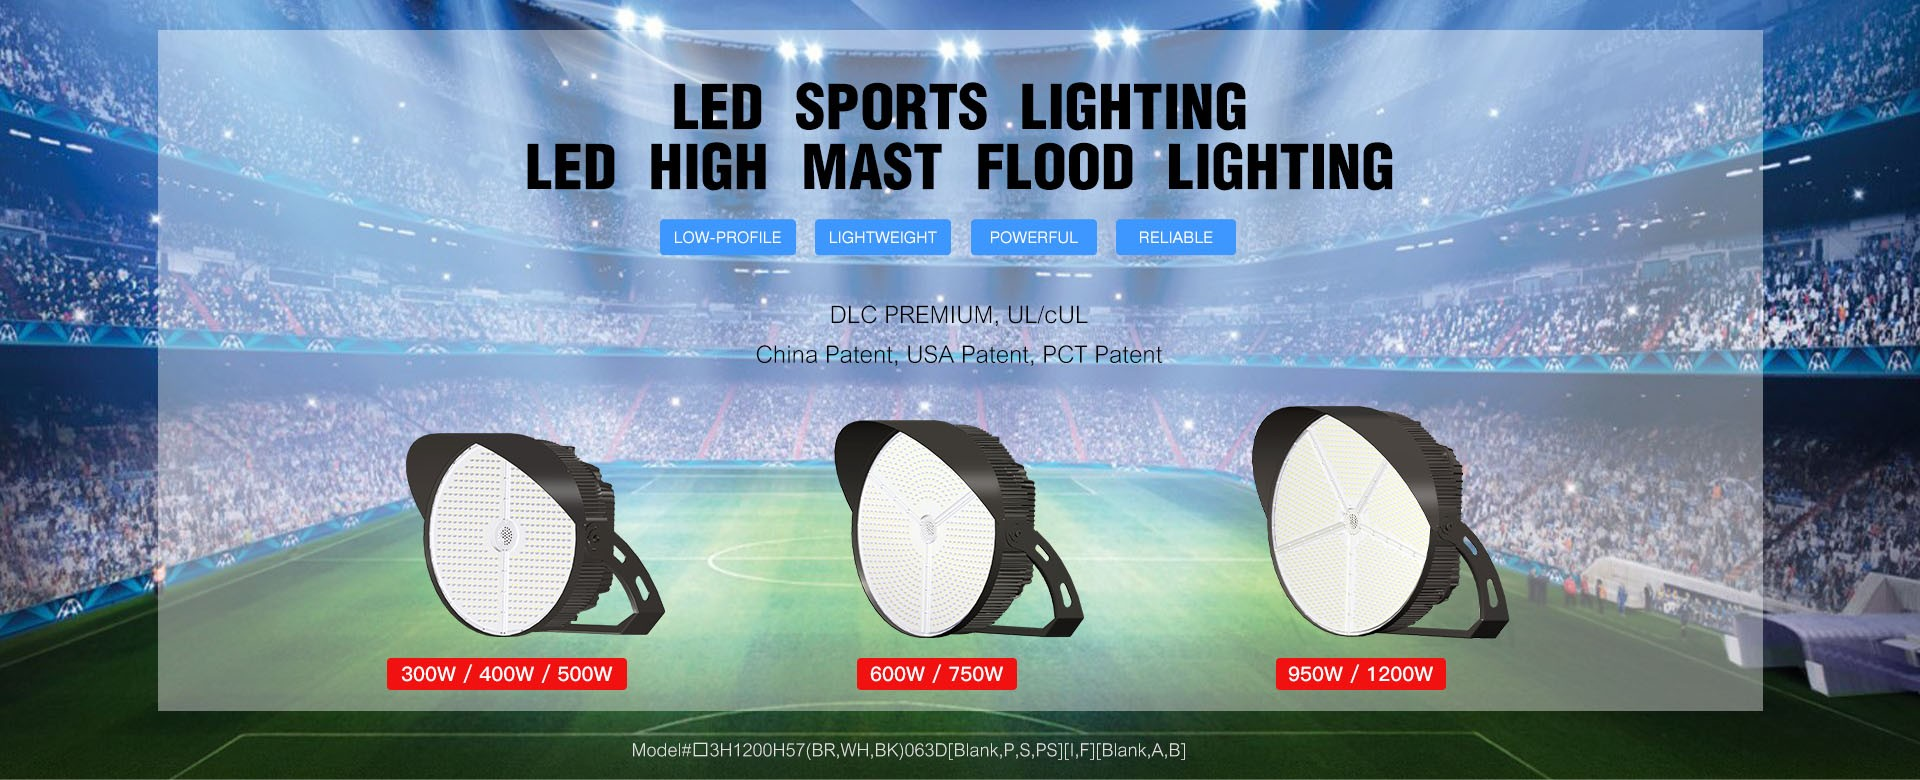 LED SPORTS LIGHT HIGH MAST FLOOD LIGHT